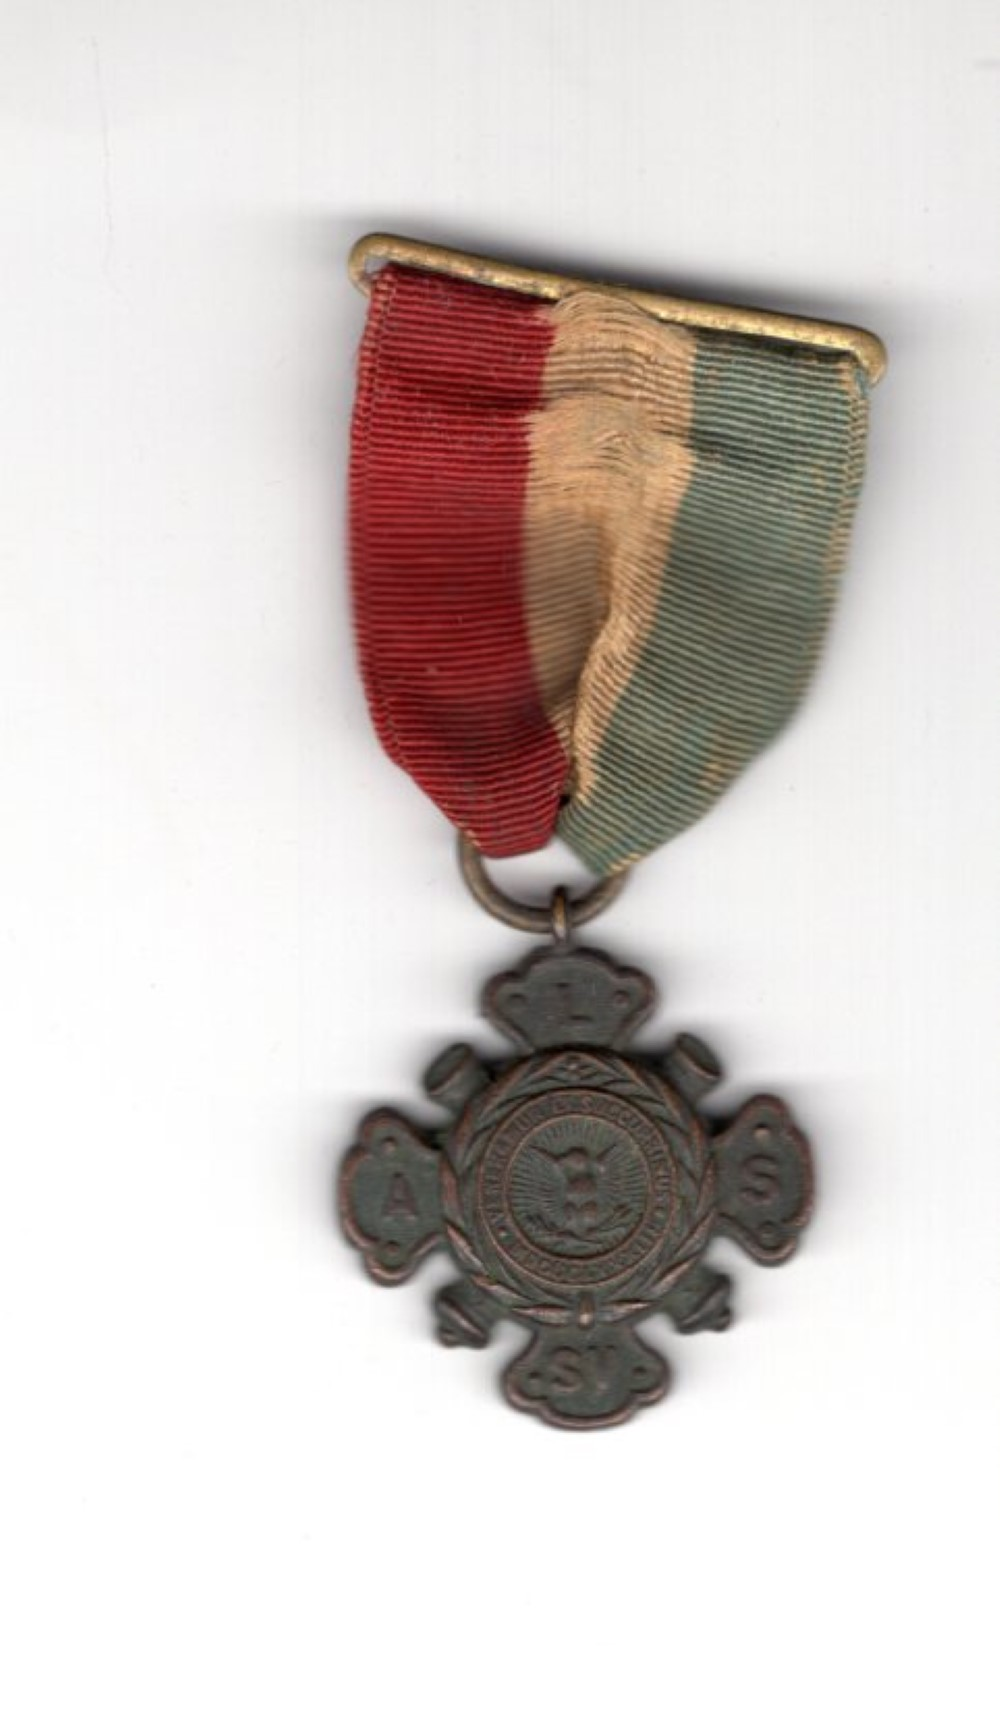 Sons of Union Veterans Auxiliary medal